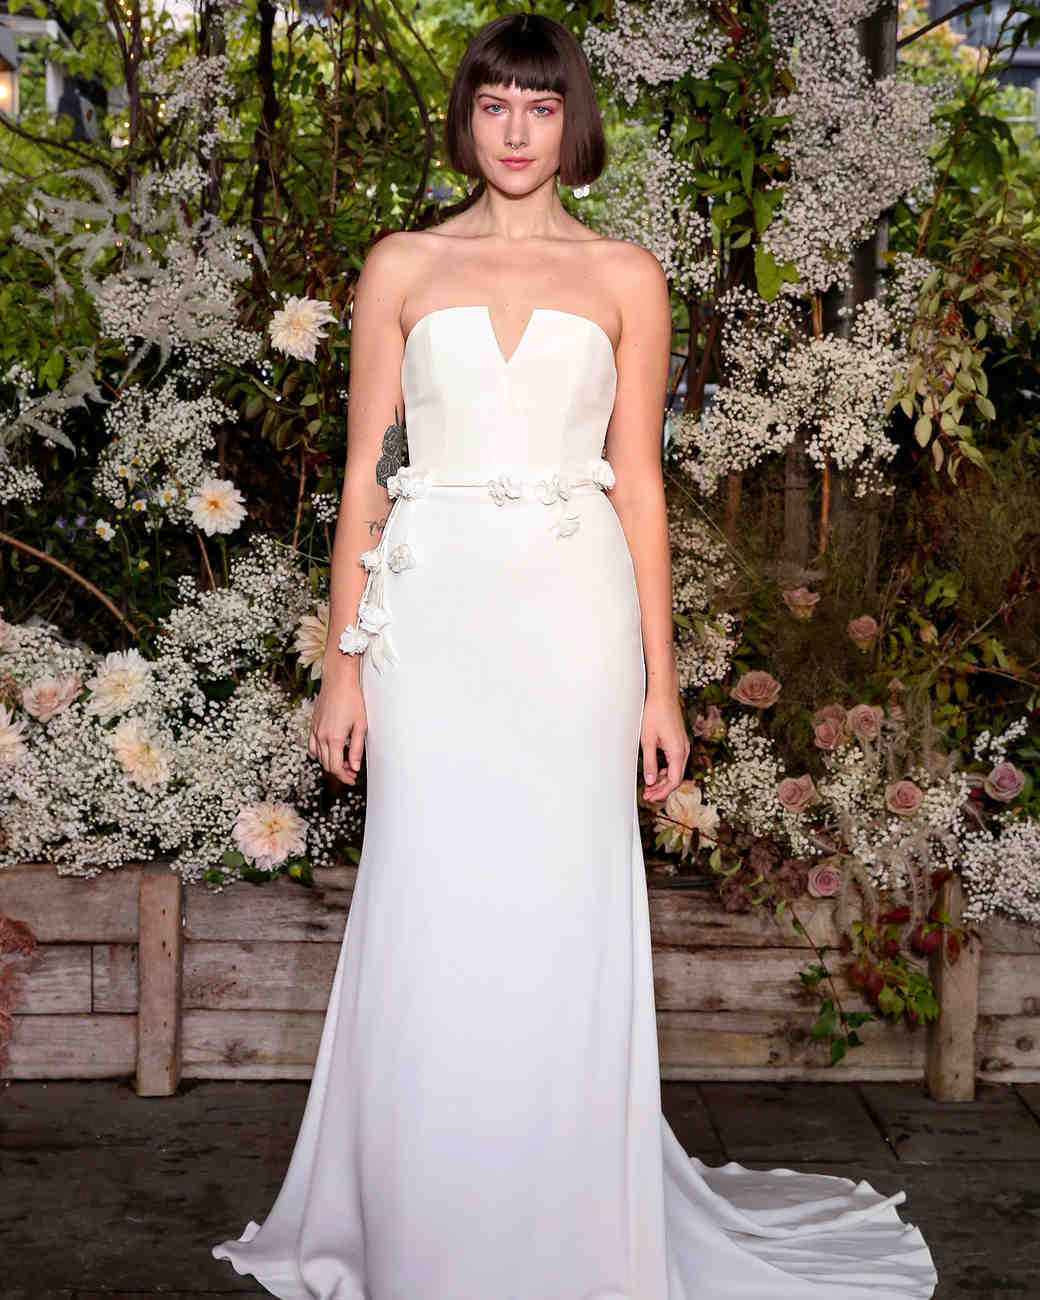 alexandra grecco wedding dress notched neckline with floral belt